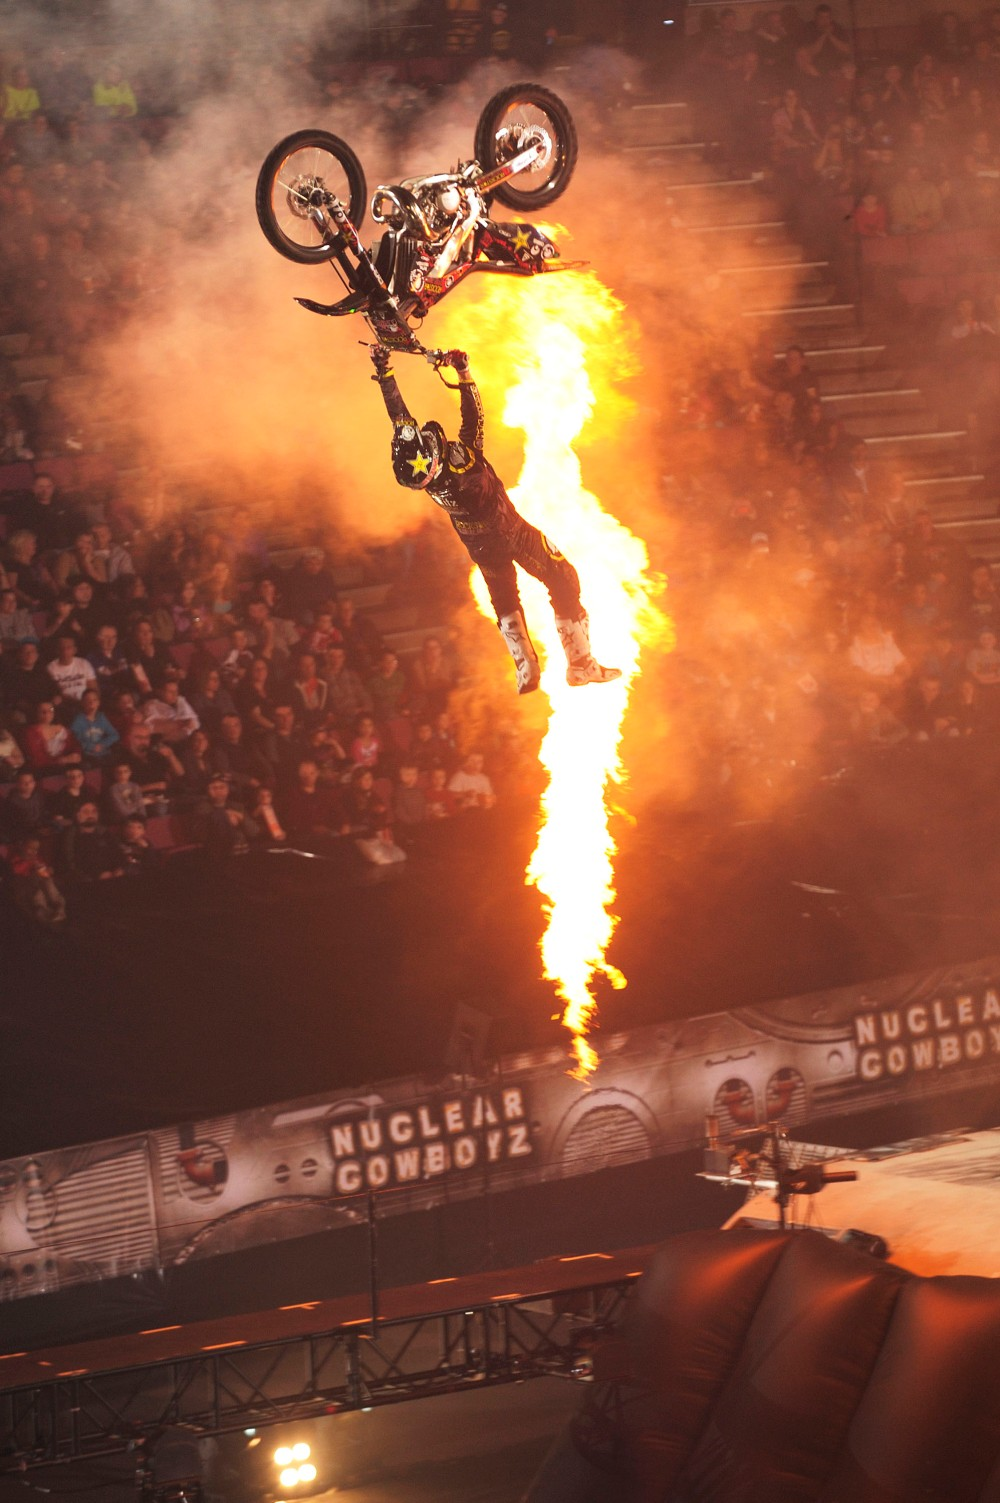 PHOTO BAKFLIP WITH FIRE PYRO Nuclear Cowboyz